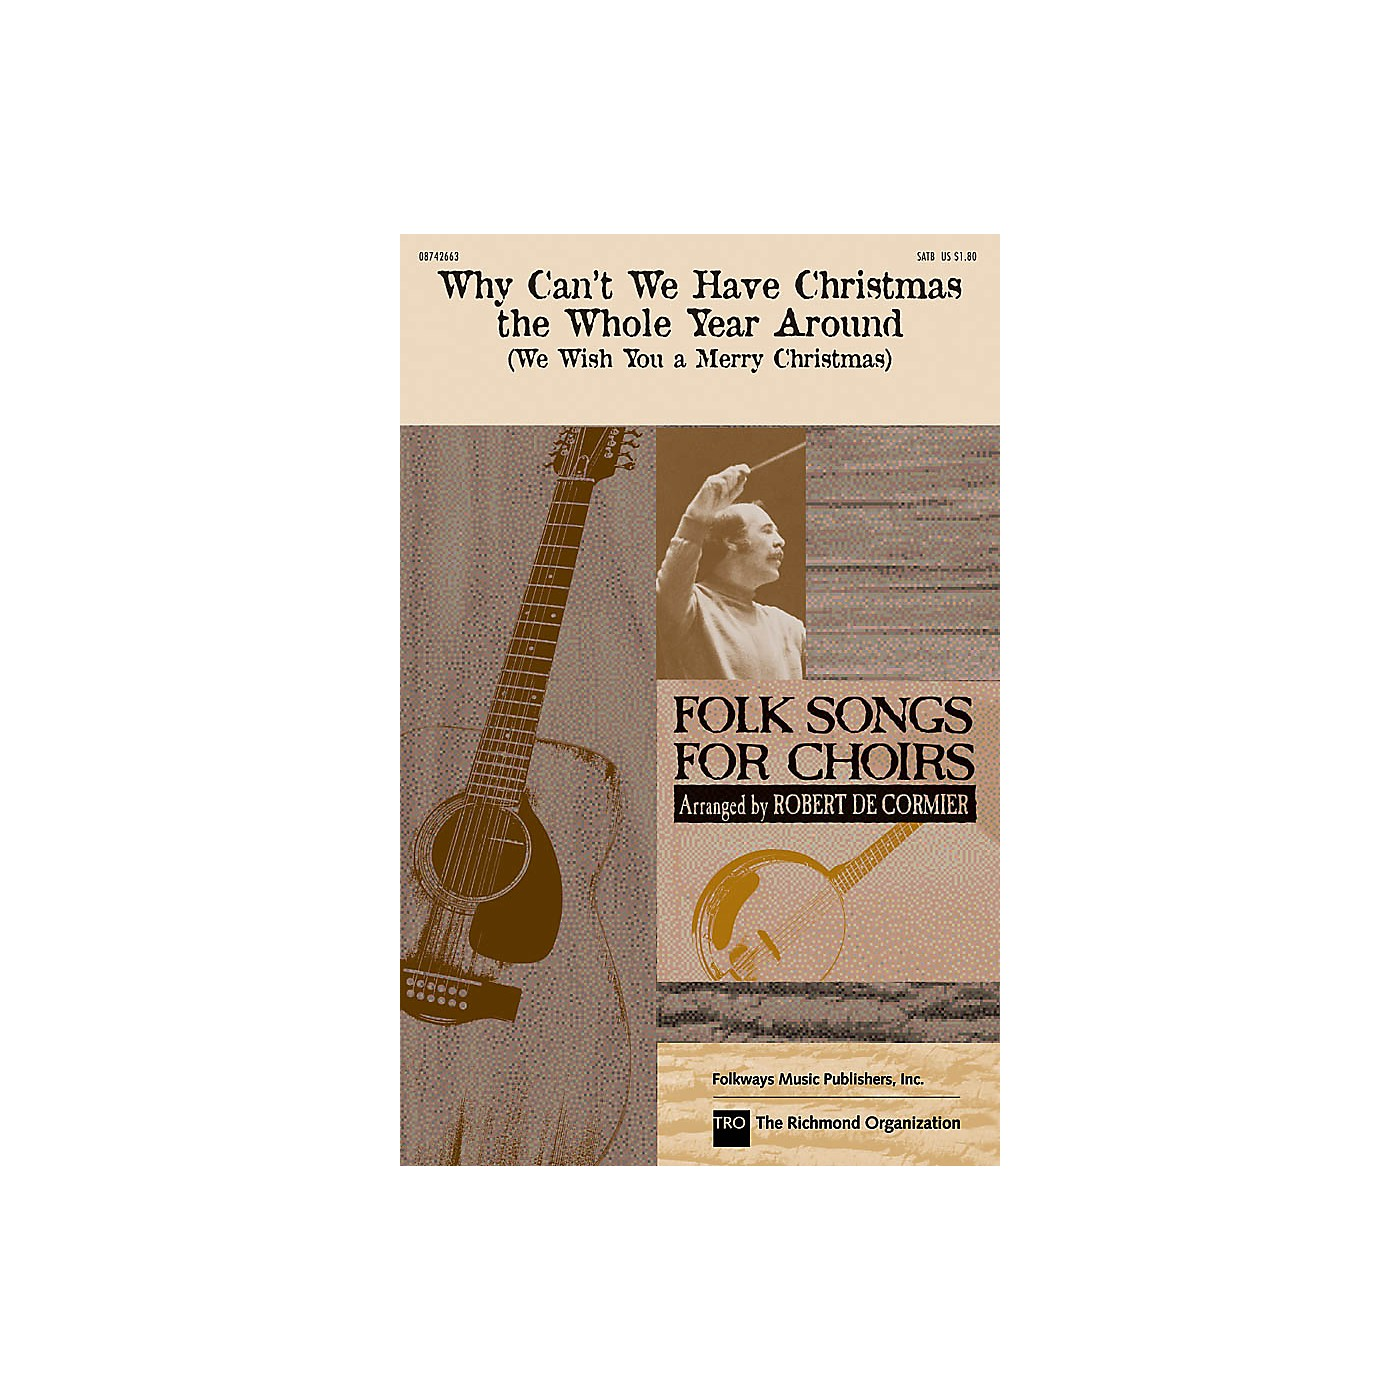 Hal Leonard Why Can't We Have Christmas the Whole Year Around SATB by The Weavers arranged by Robert De Cormier thumbnail